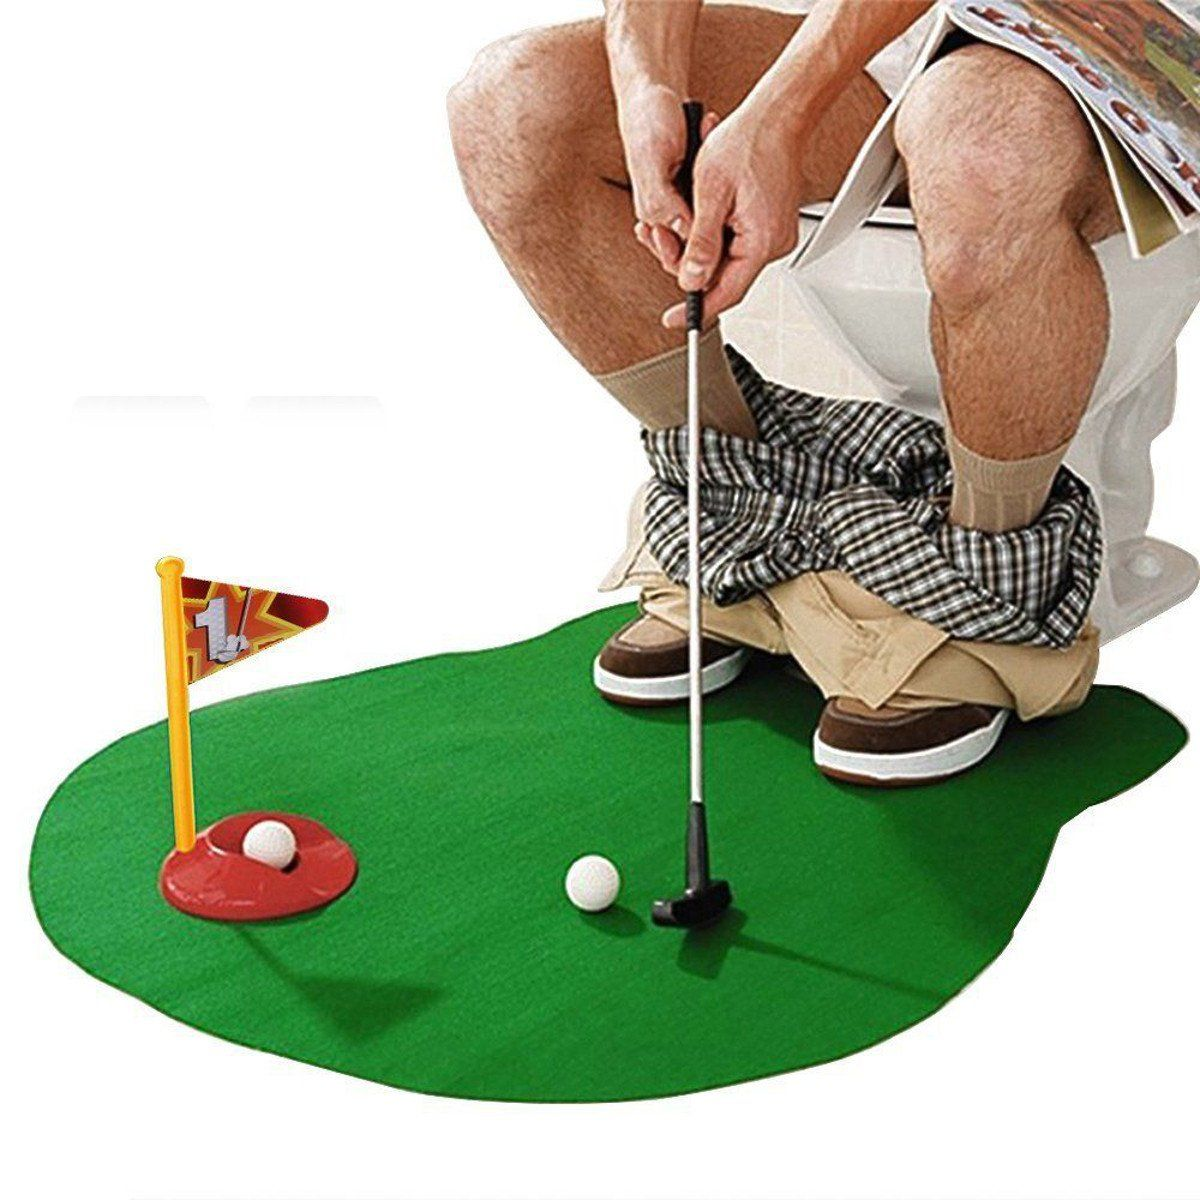 Bathroom Funny Golf Toilet Time Mini Game Golf Humor Toilet